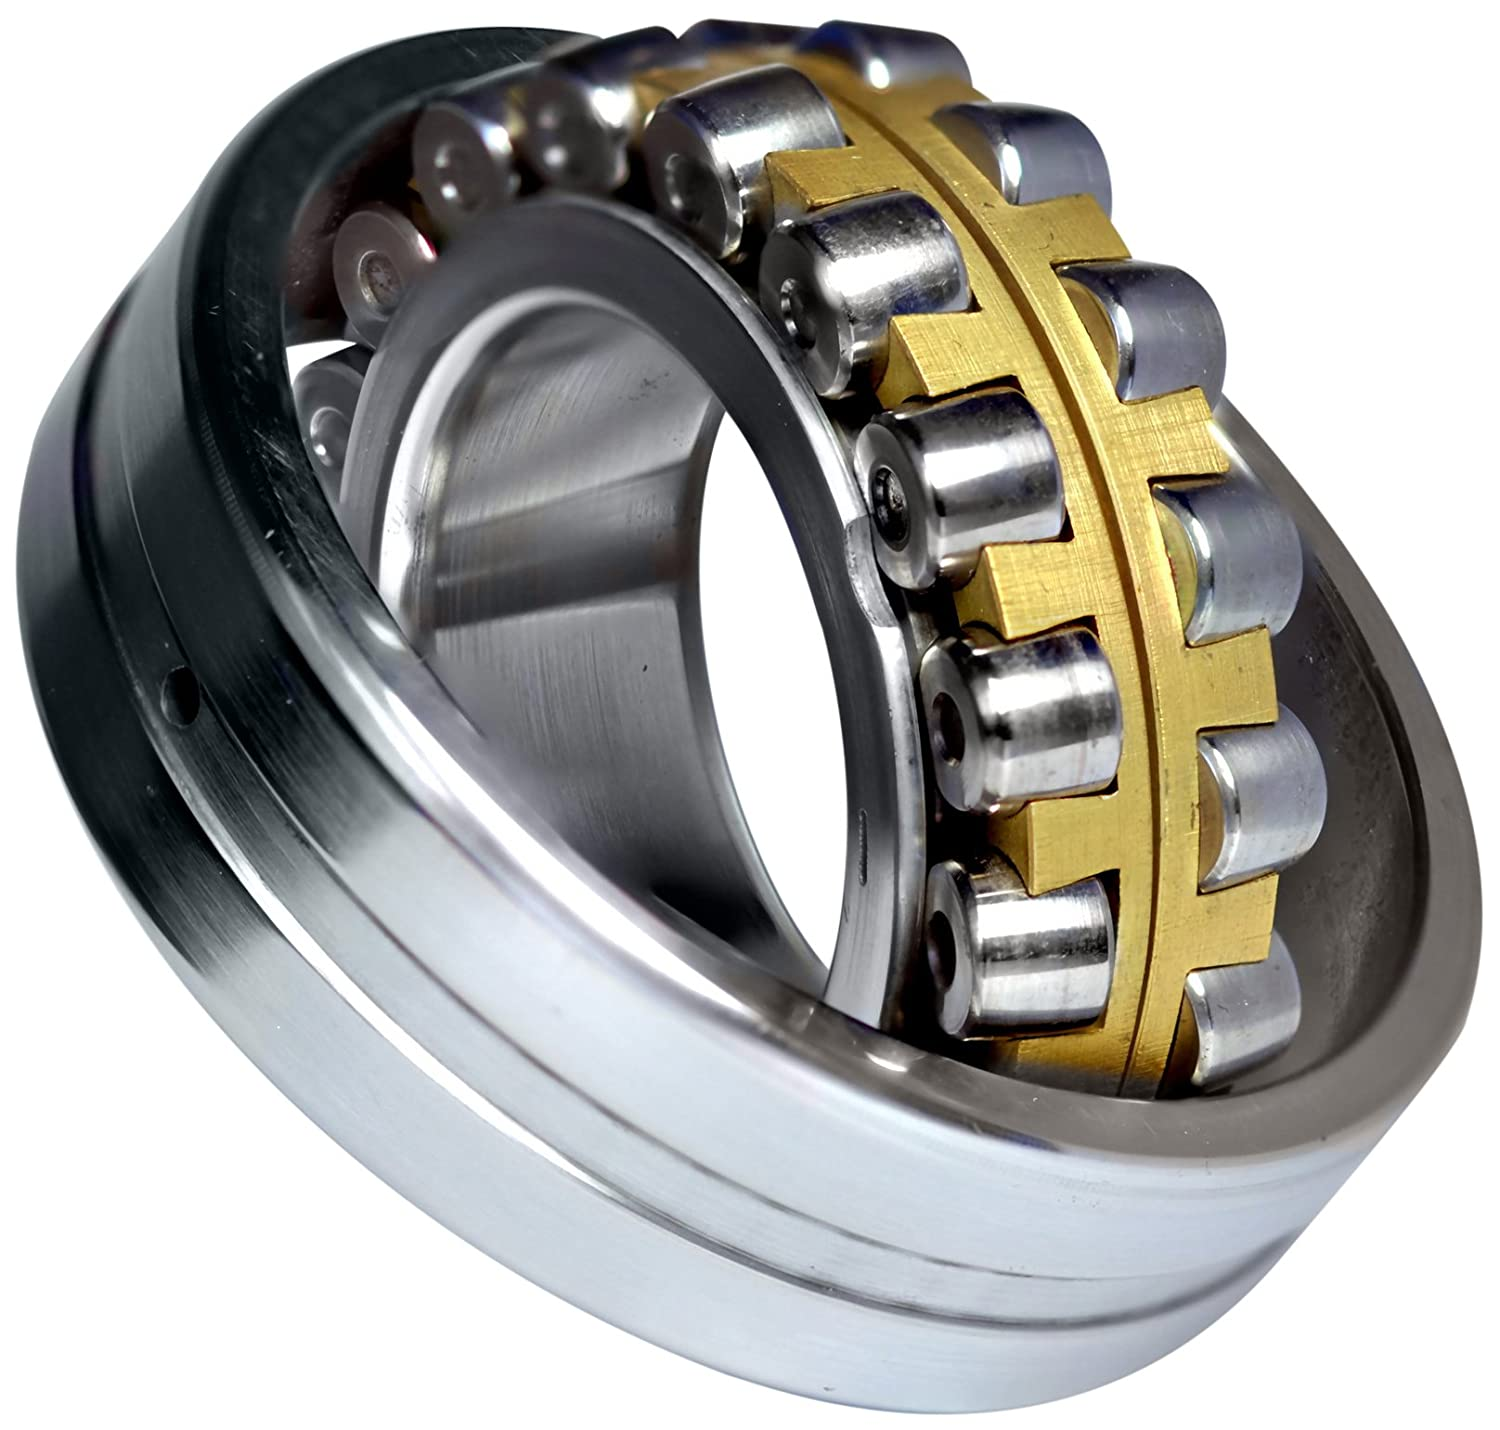 Max 74% OFF URB 22238 KMC3W33 Spherical Roller Cage Bearing Louisville-Jefferson County Mall Machined Brass